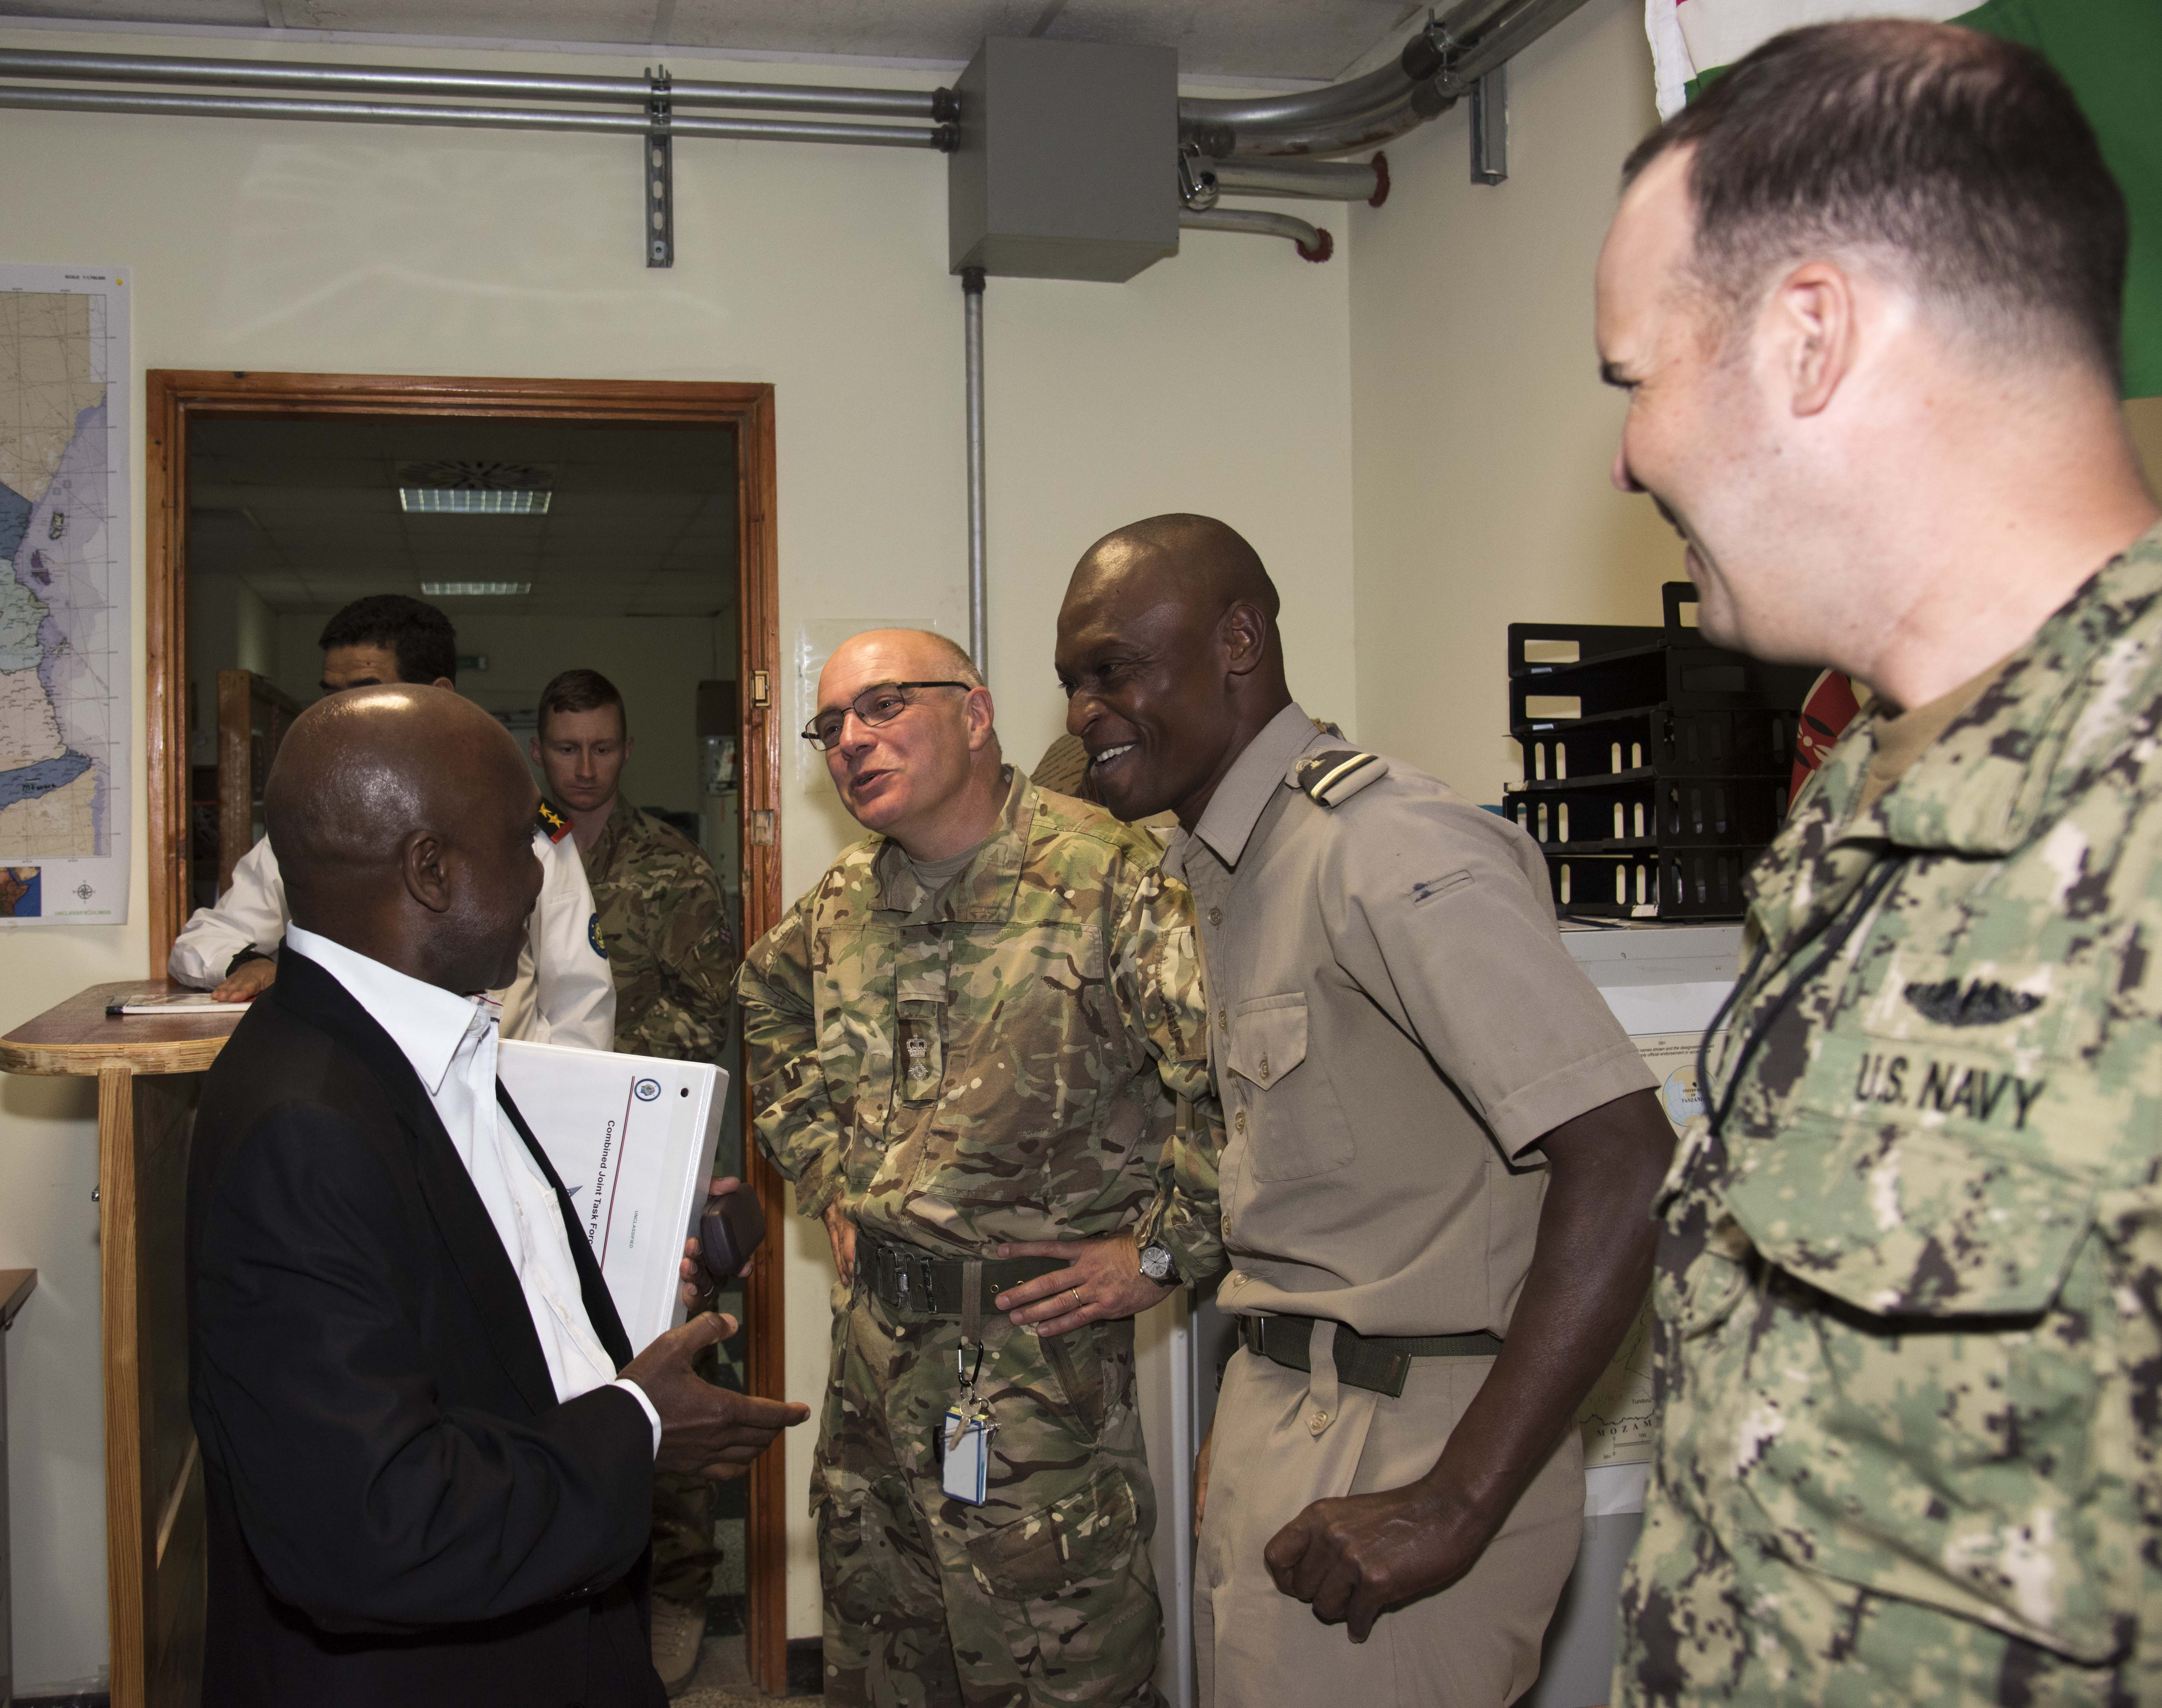 Ambassador Issimail Chanfi, Eastern Africa Standby Force (EASF) director, jokes with multinational members of the Fusion Action Cell during his tour Oct. 27, 2015 at Camp Lemonnier, Djibouti. The FAC brings representatives from regional partners into a single office where foreign liaison officers and their counterparts work, interact, plan and learn from each other. (U.S. Air Force photo by Staff Sgt. Victoria Sneed)